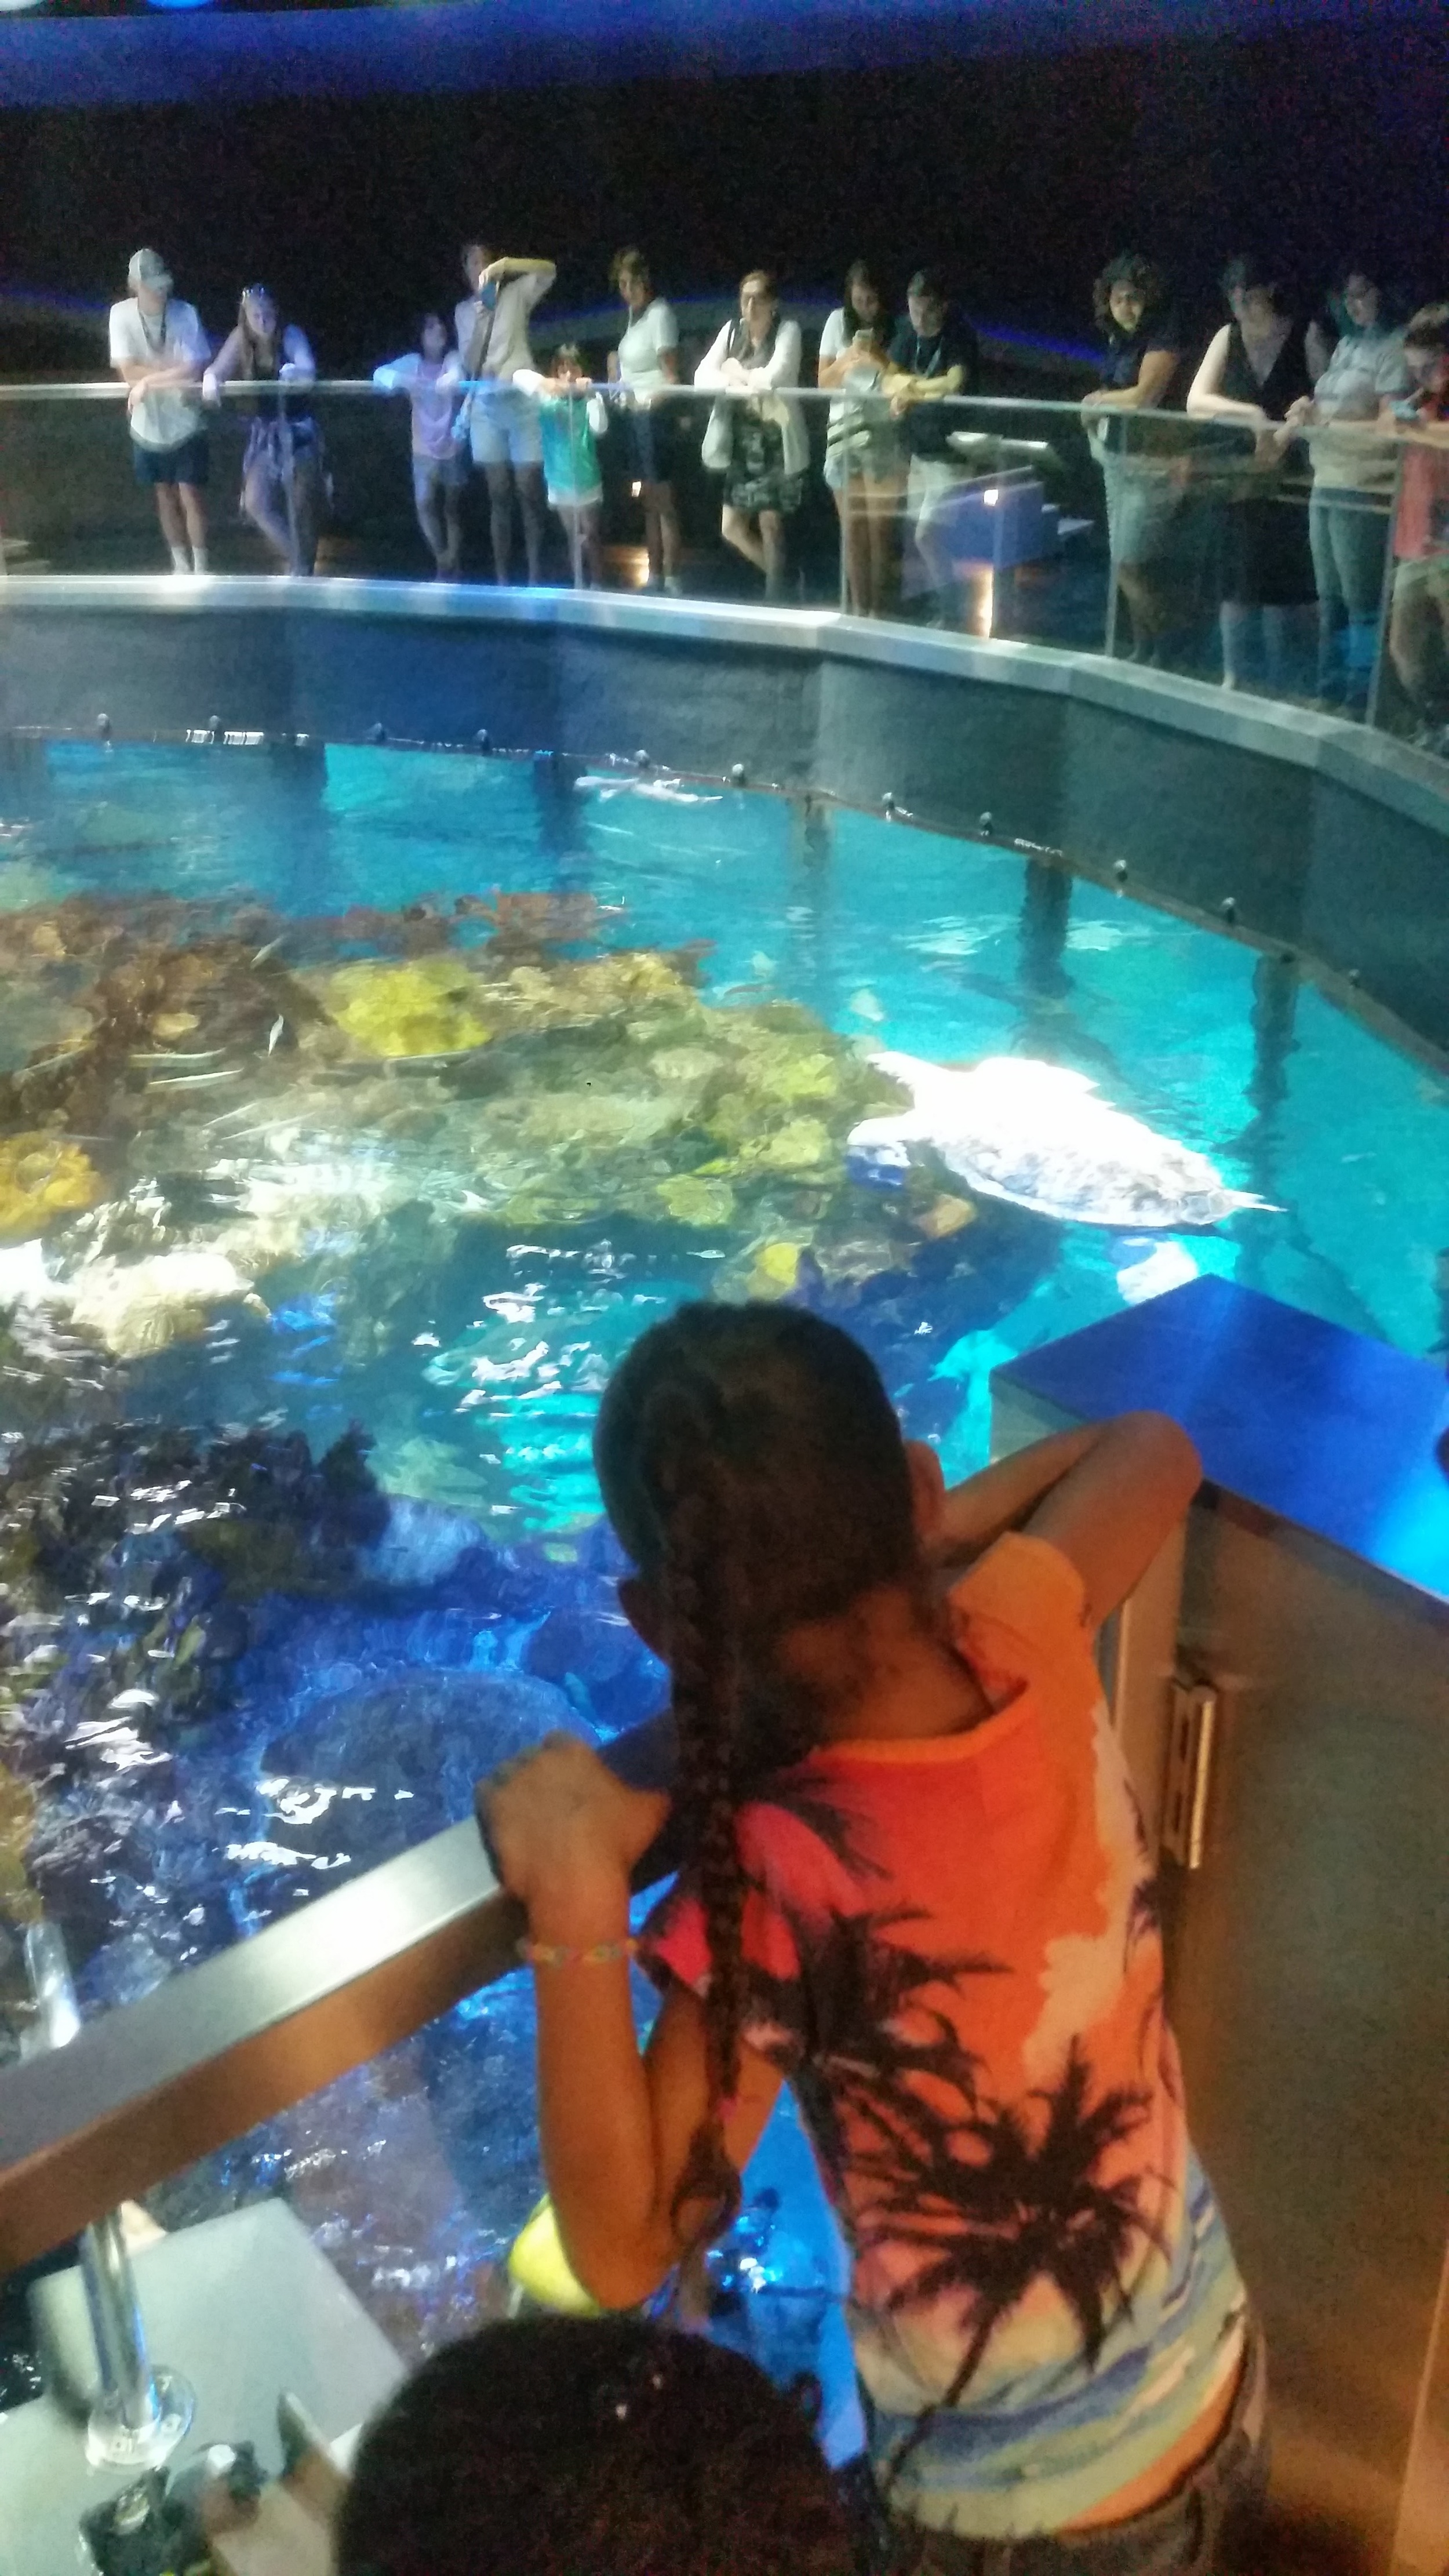 Students learn about marine life during a field trip to the New England Aquarium